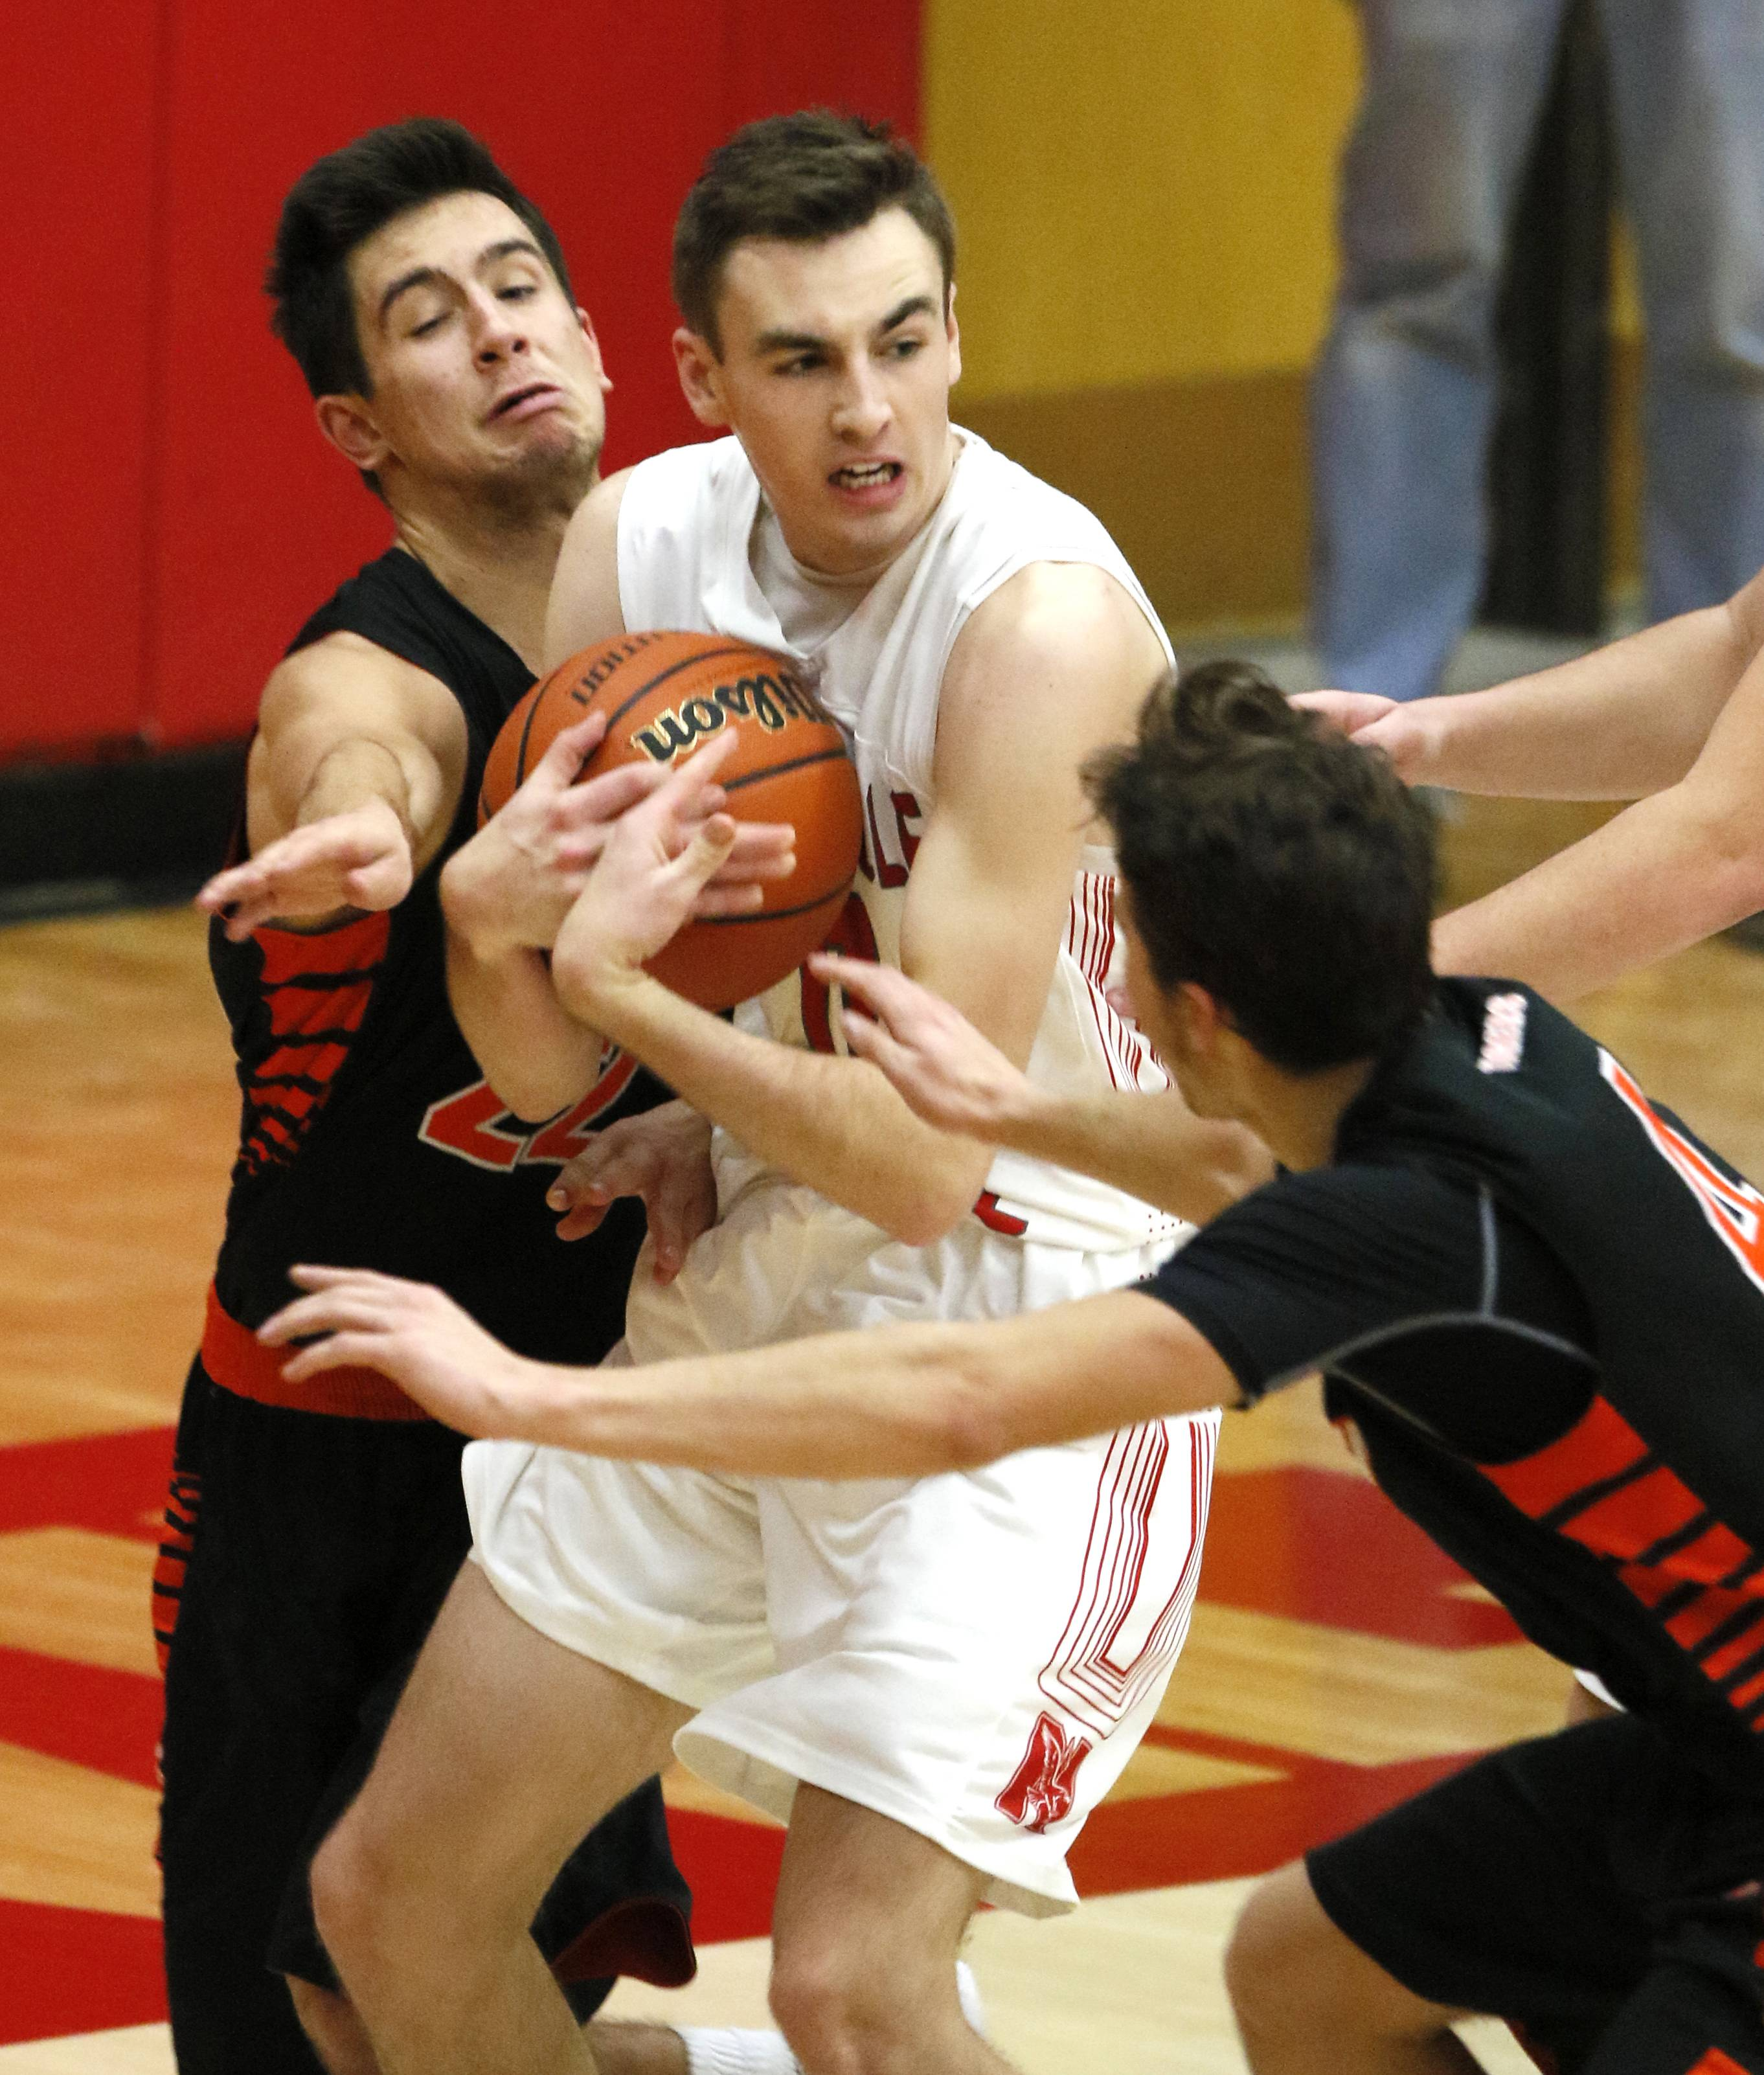 Naperville Central leaves WW South at a loss